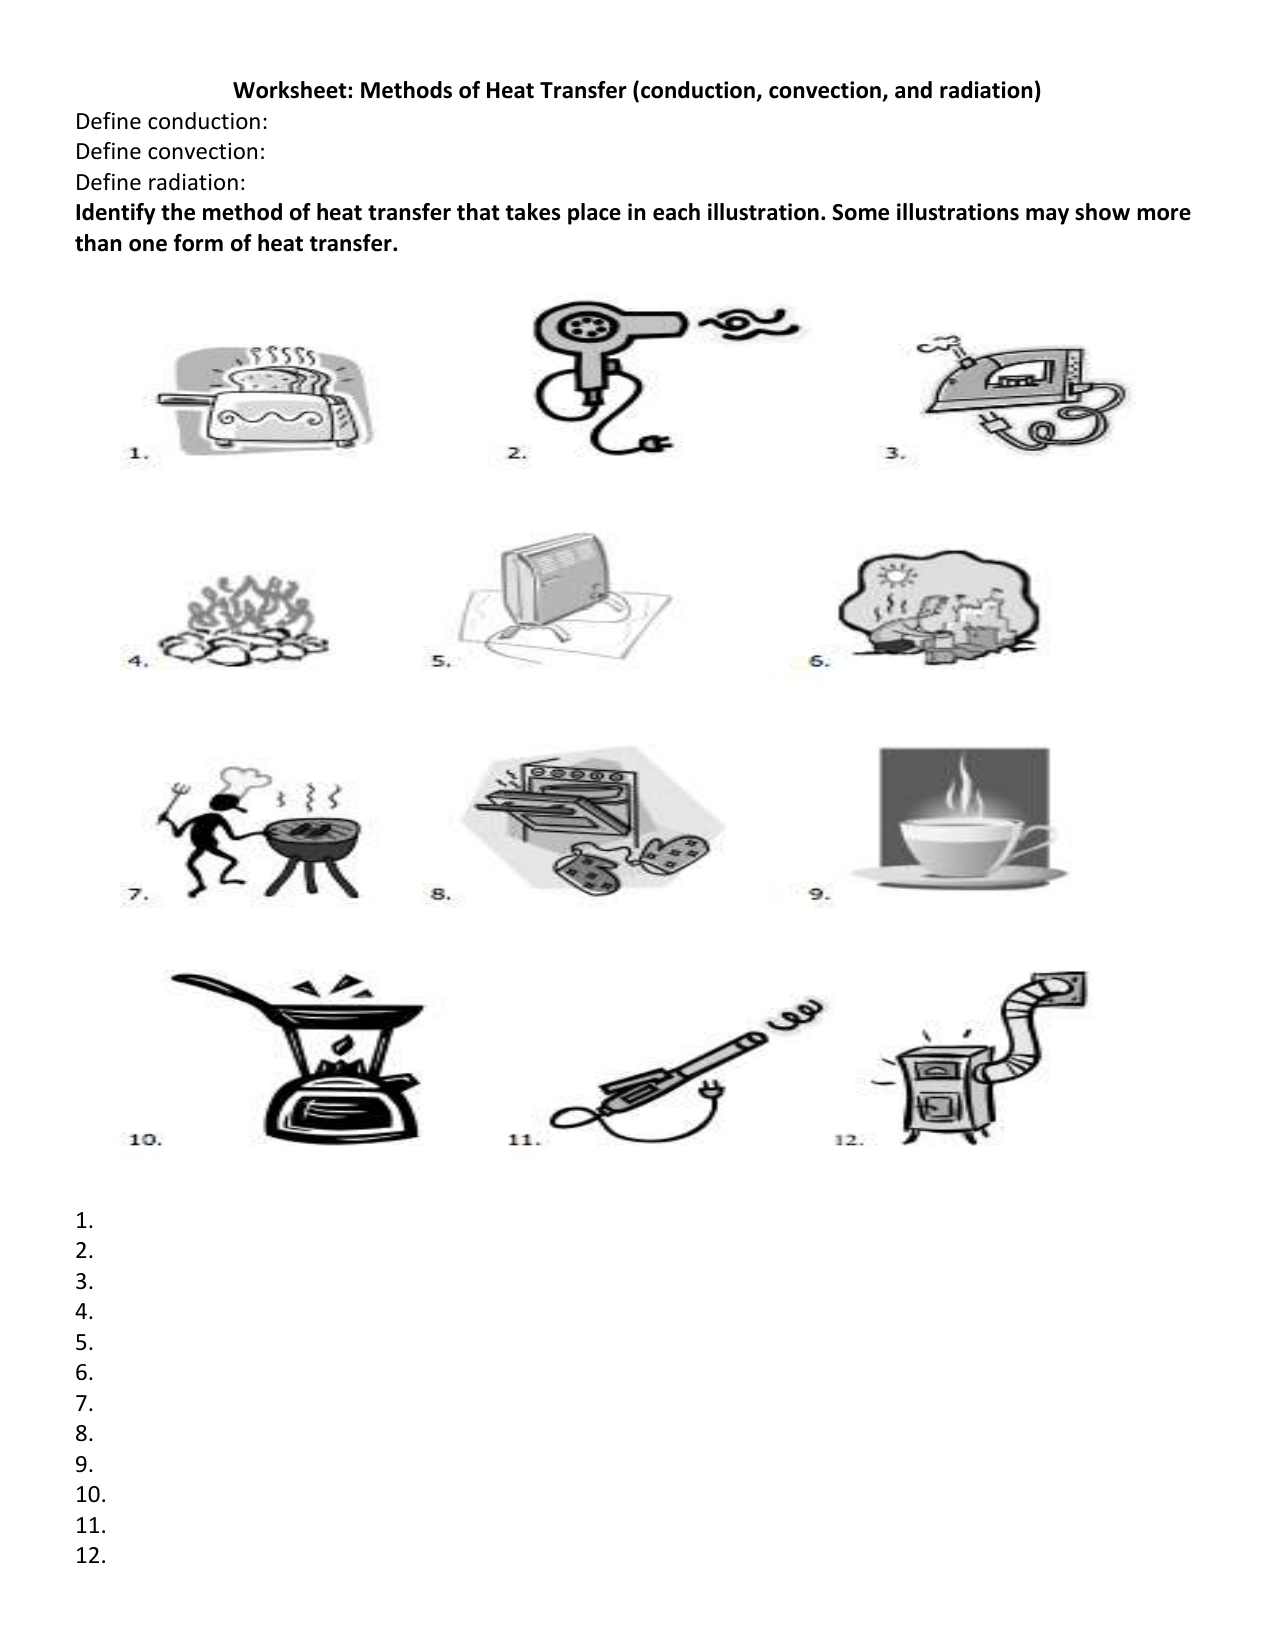 Worksheets Heat Transfer Worksheet methods of heat transfer worksheet